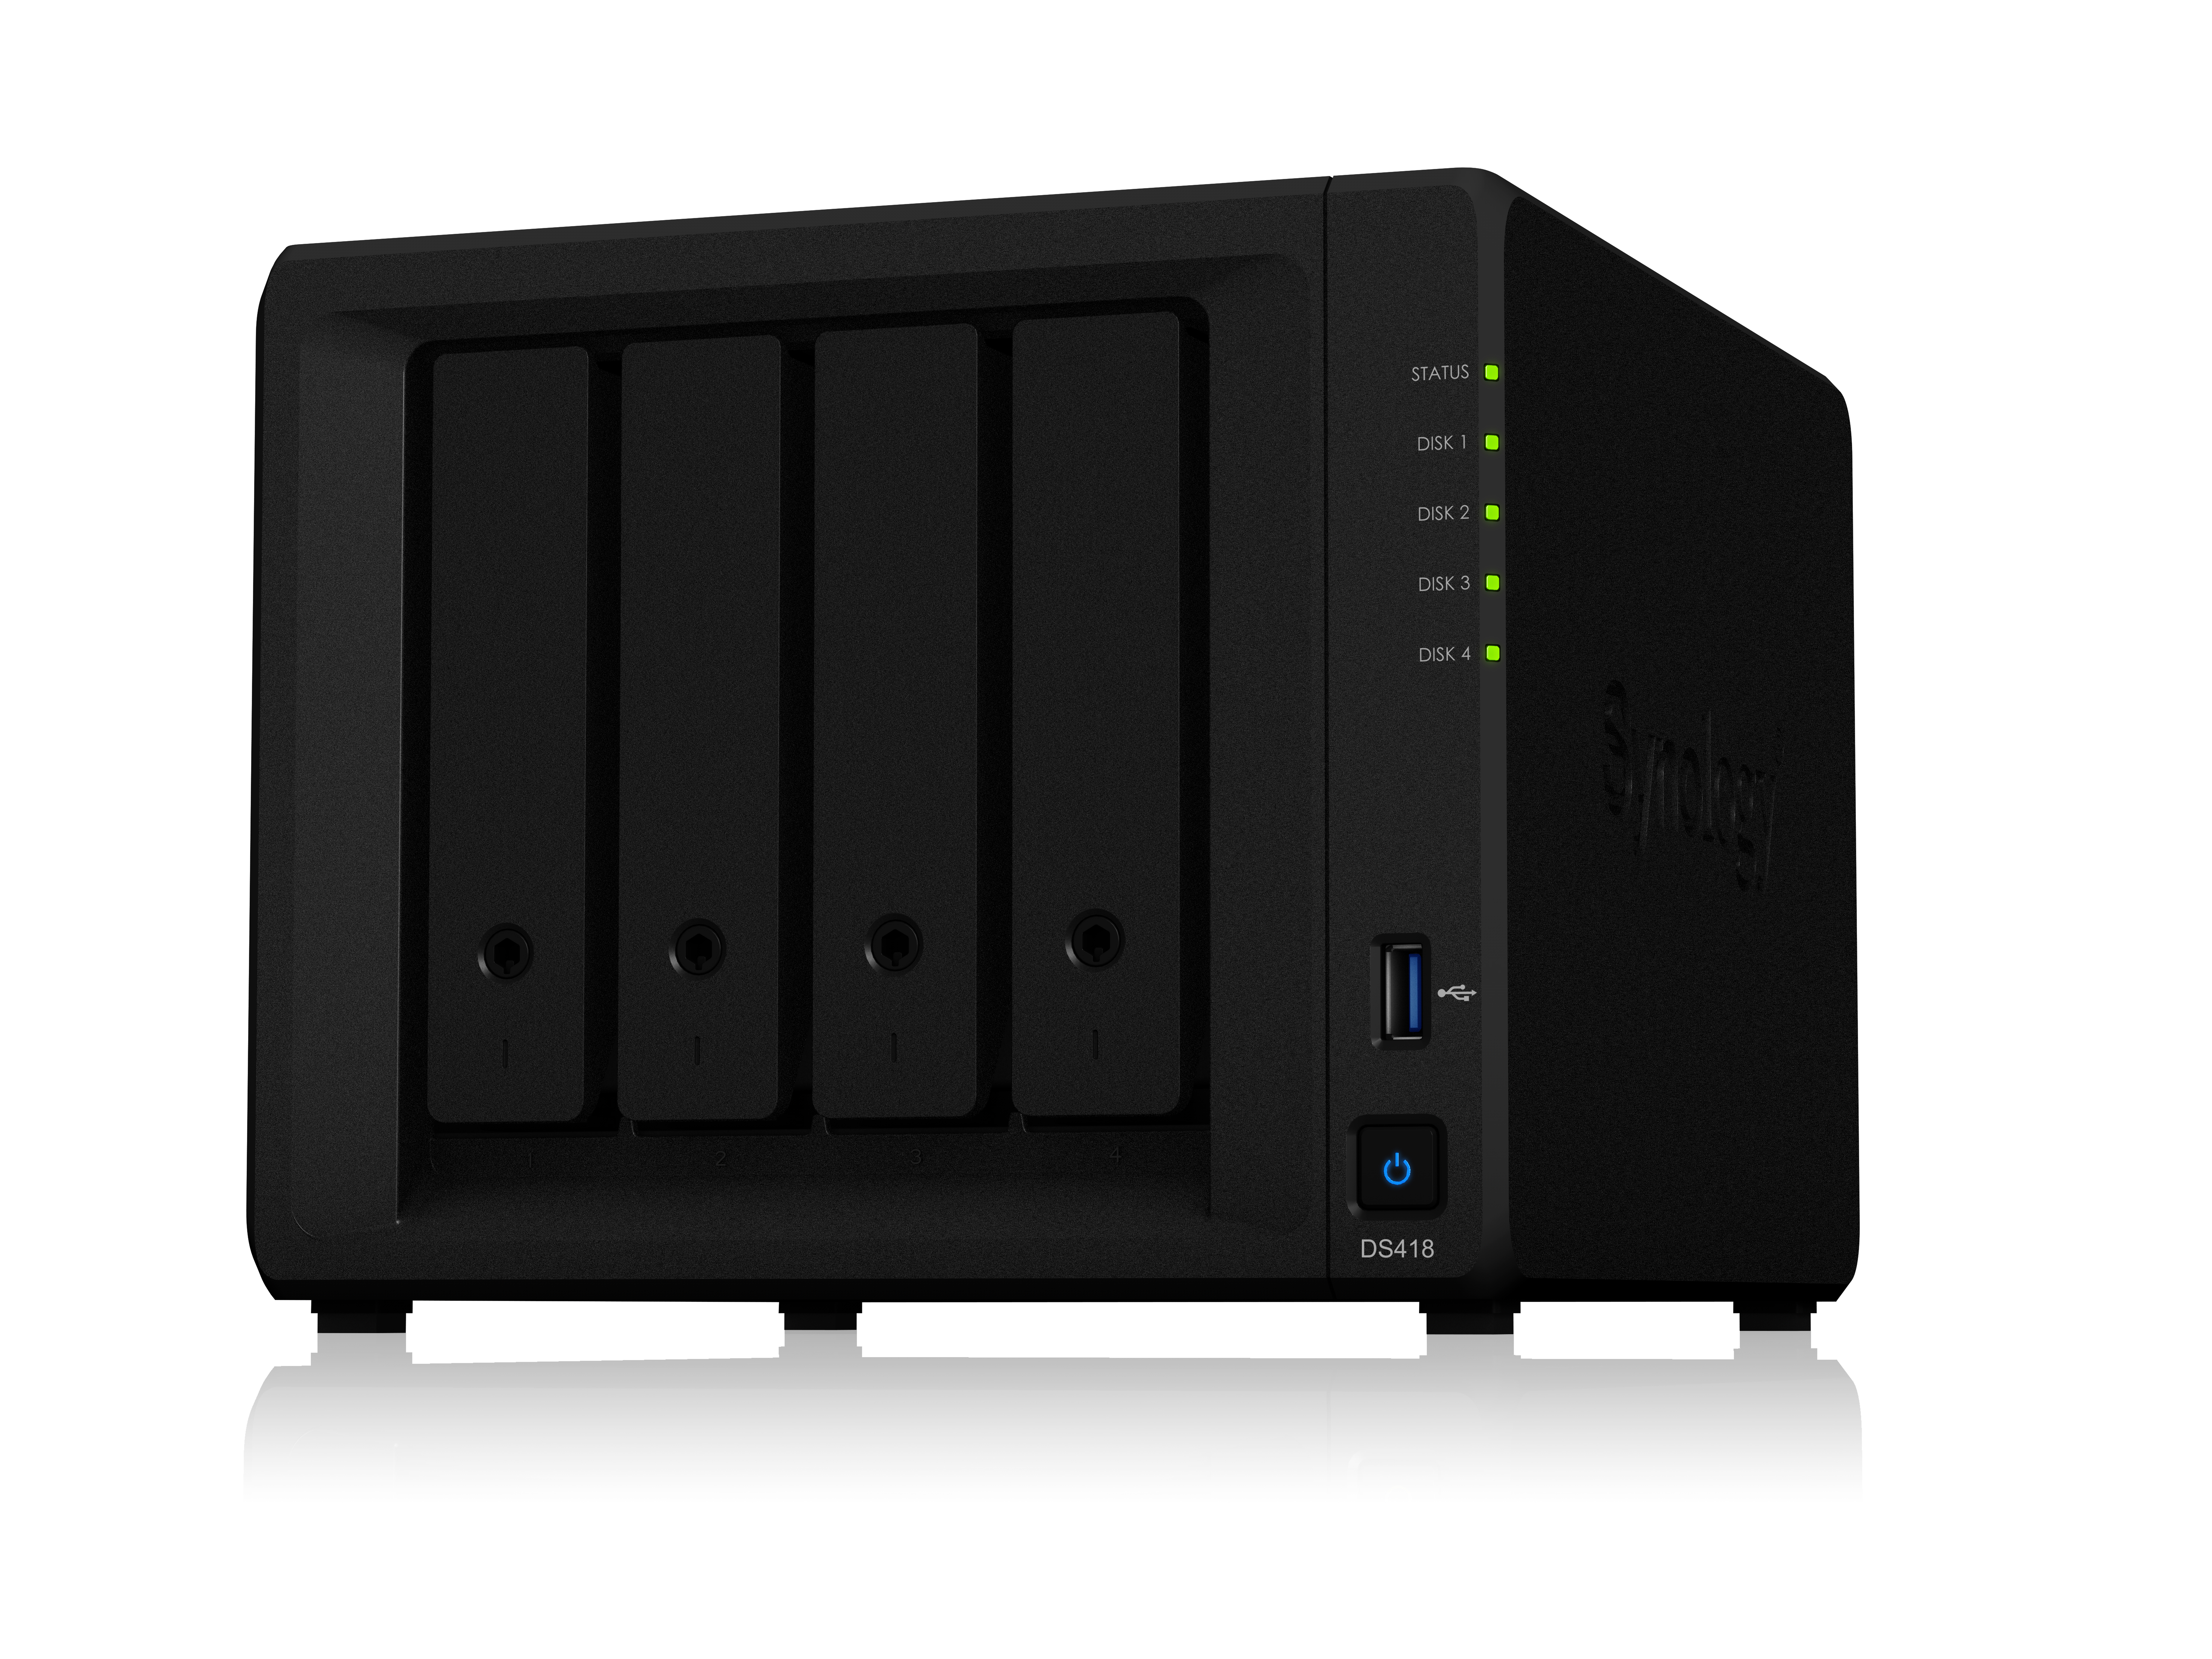 SYNOLOGY DS418/16TB-IW DS418 NAS MINI TOWER ETHERNET LAN BLACK